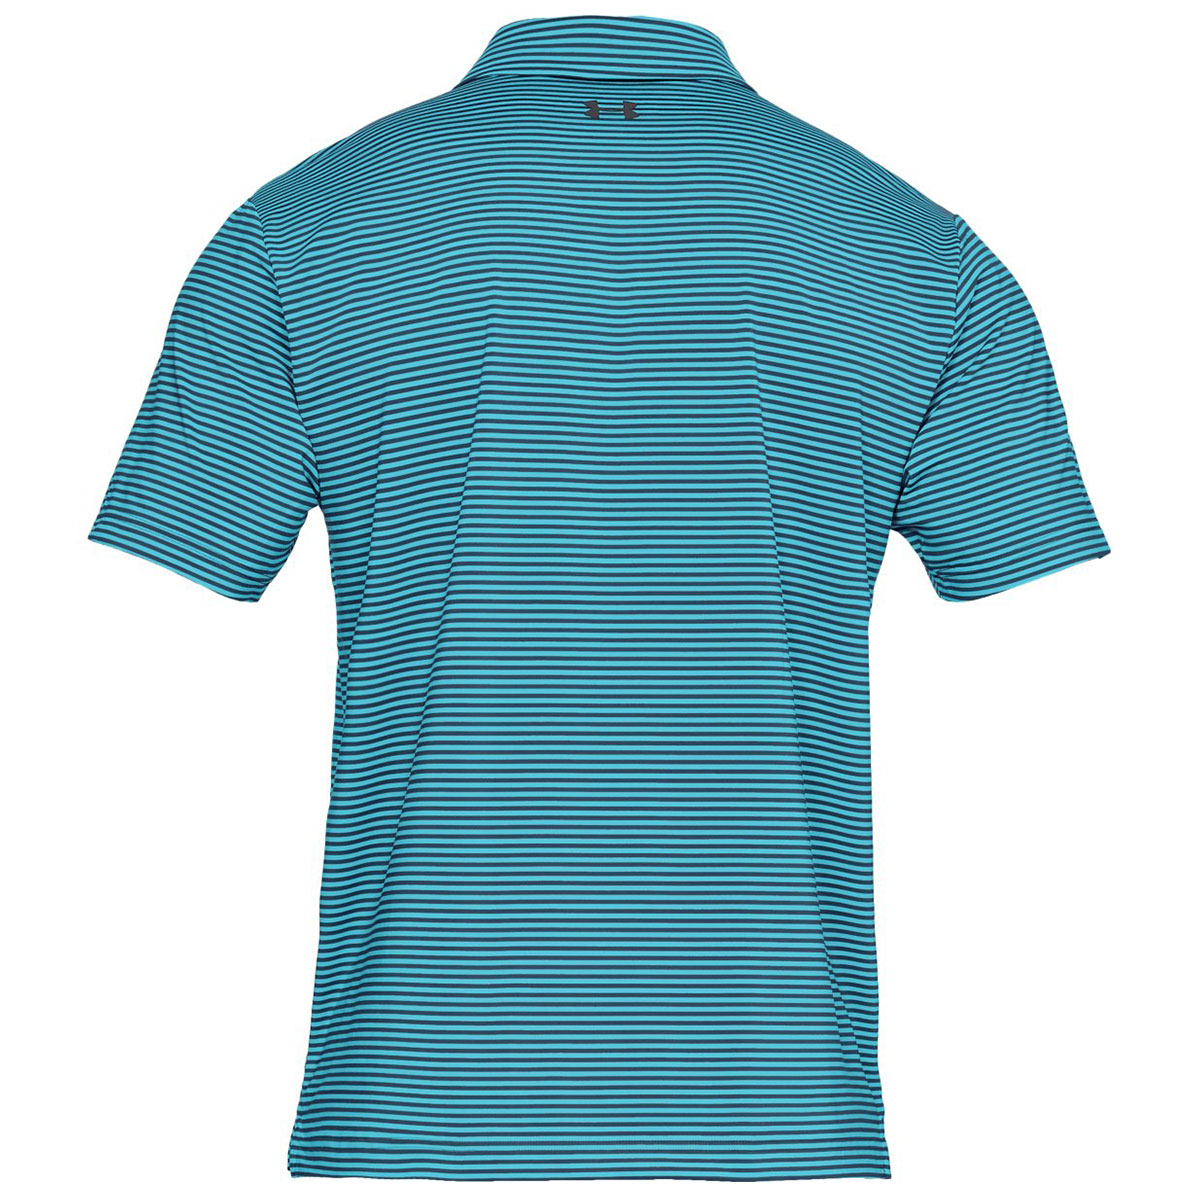 Under-Armour-Mens-UA-Playoff-Performance-Golf-Polo-Shirt-33-OFF-RRP thumbnail 113